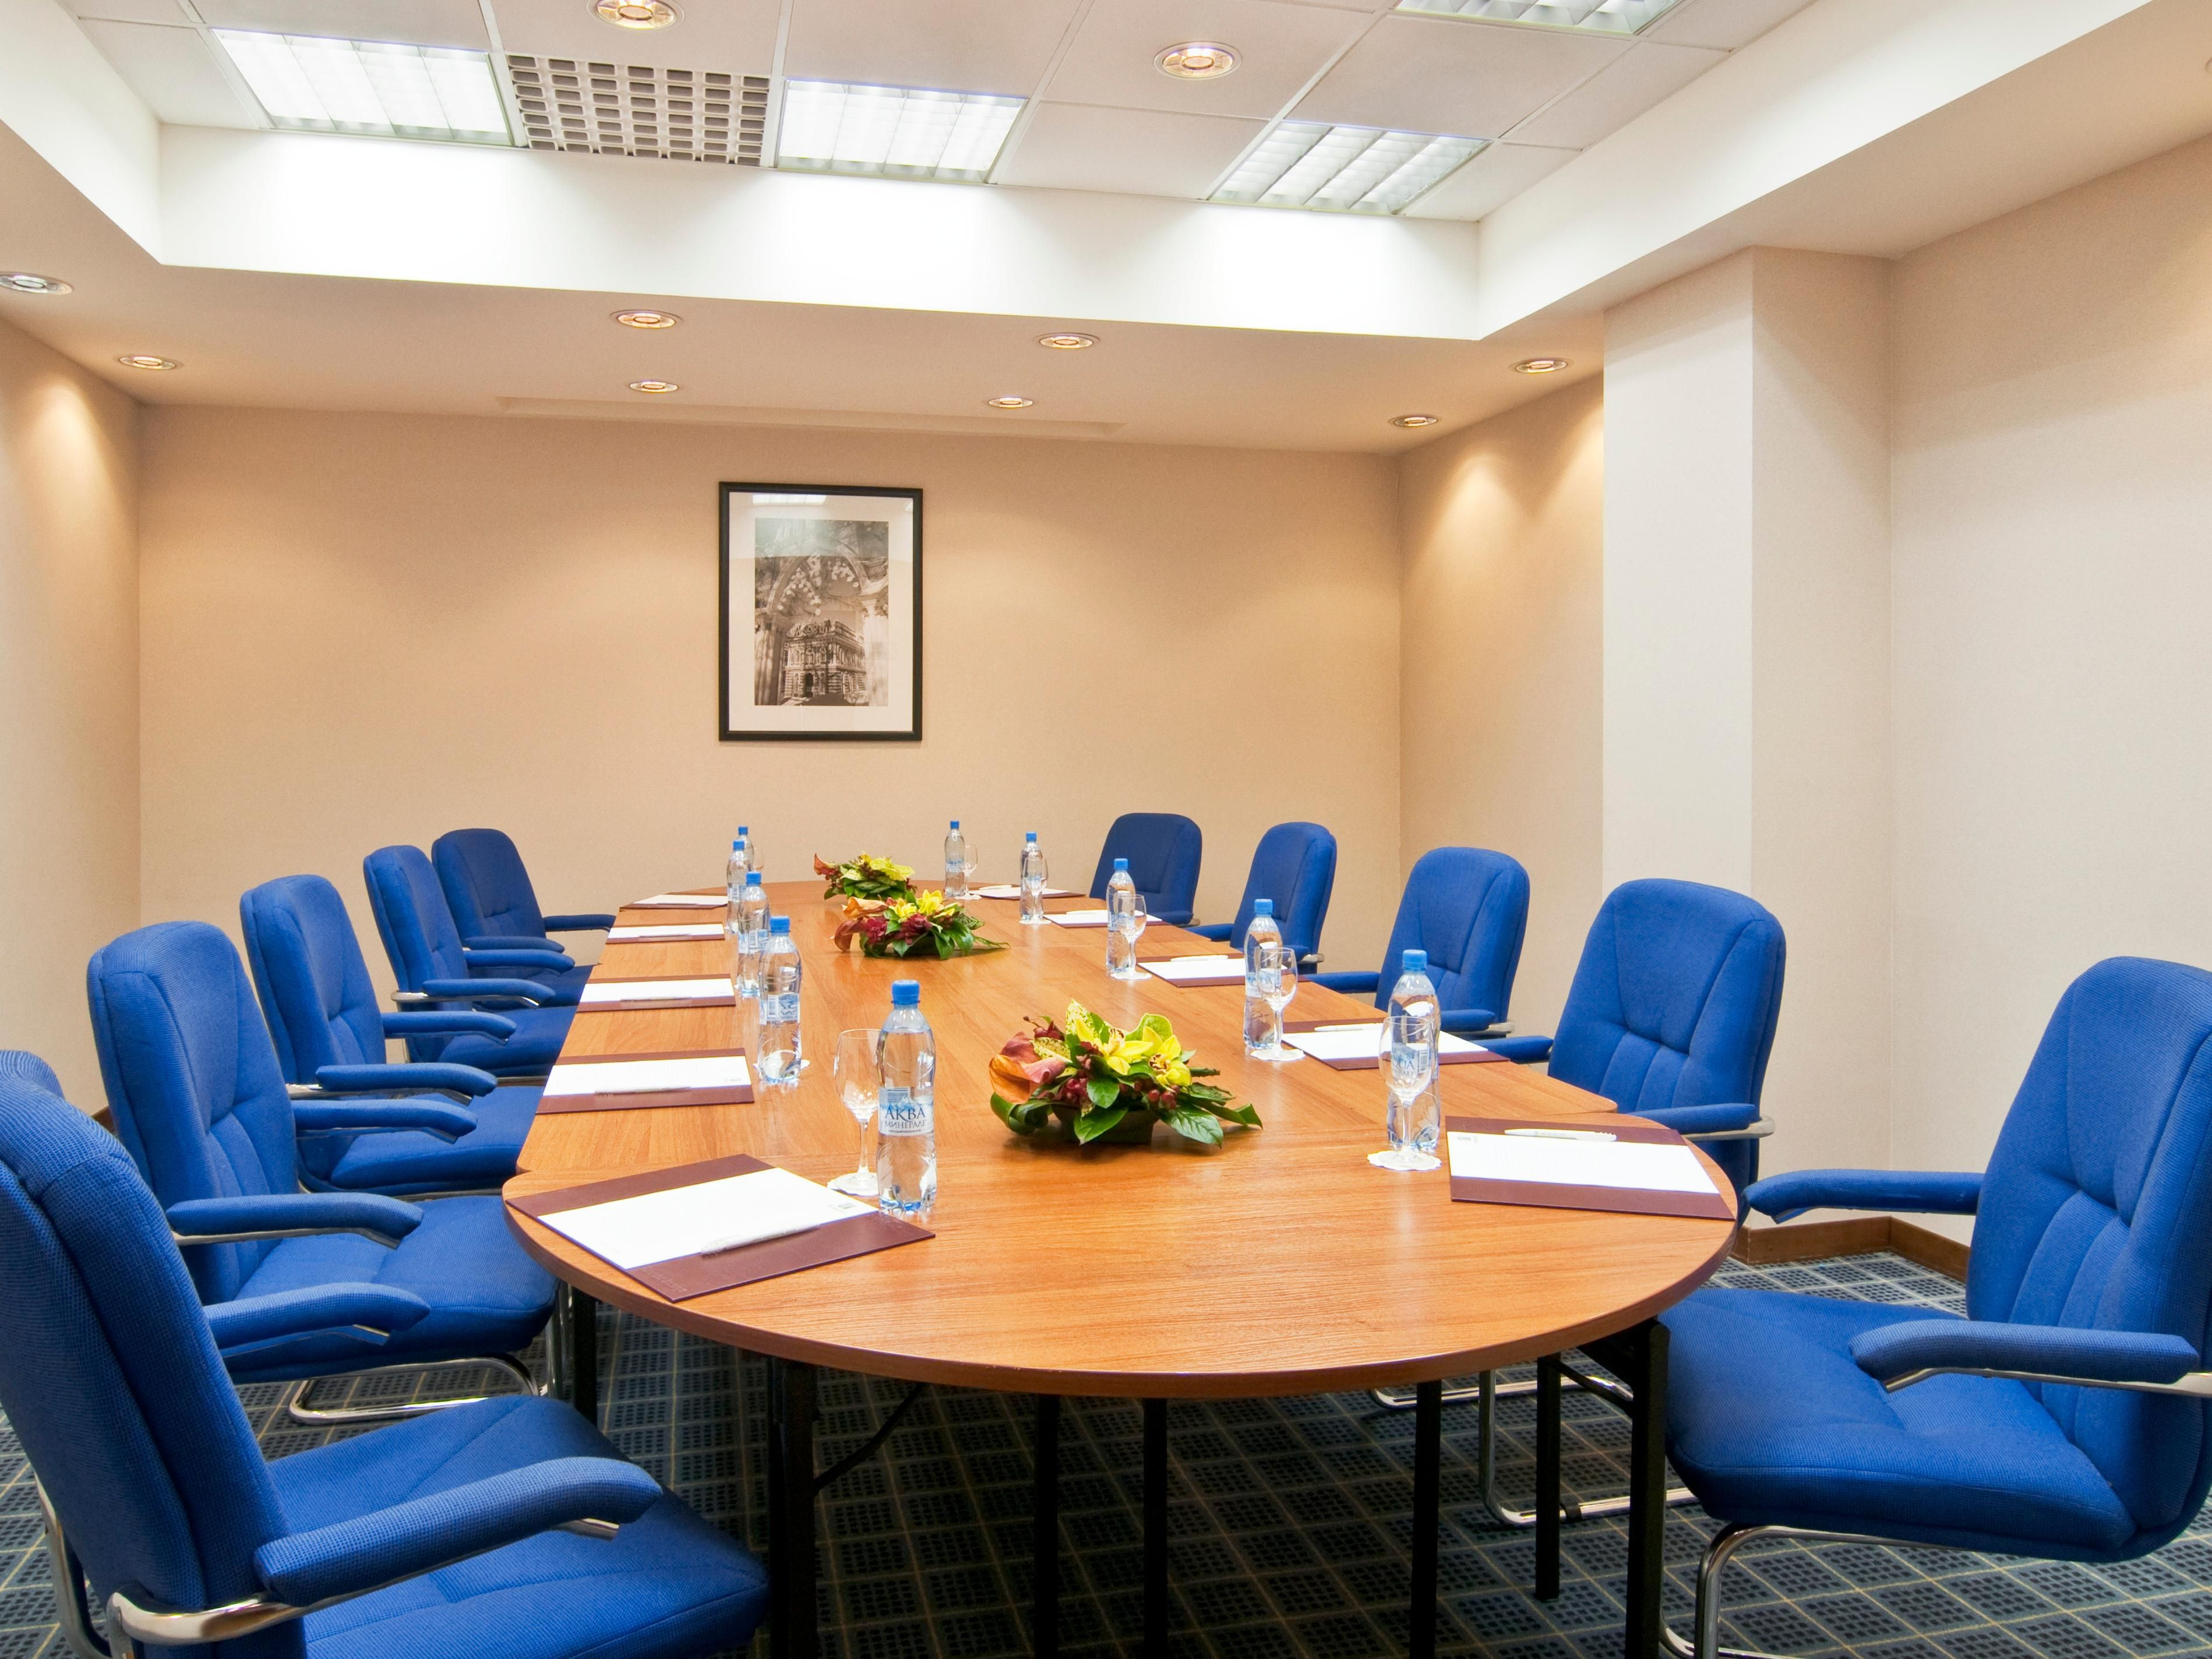 Smart choice for boardroom meetings and reviews– Rostov Room